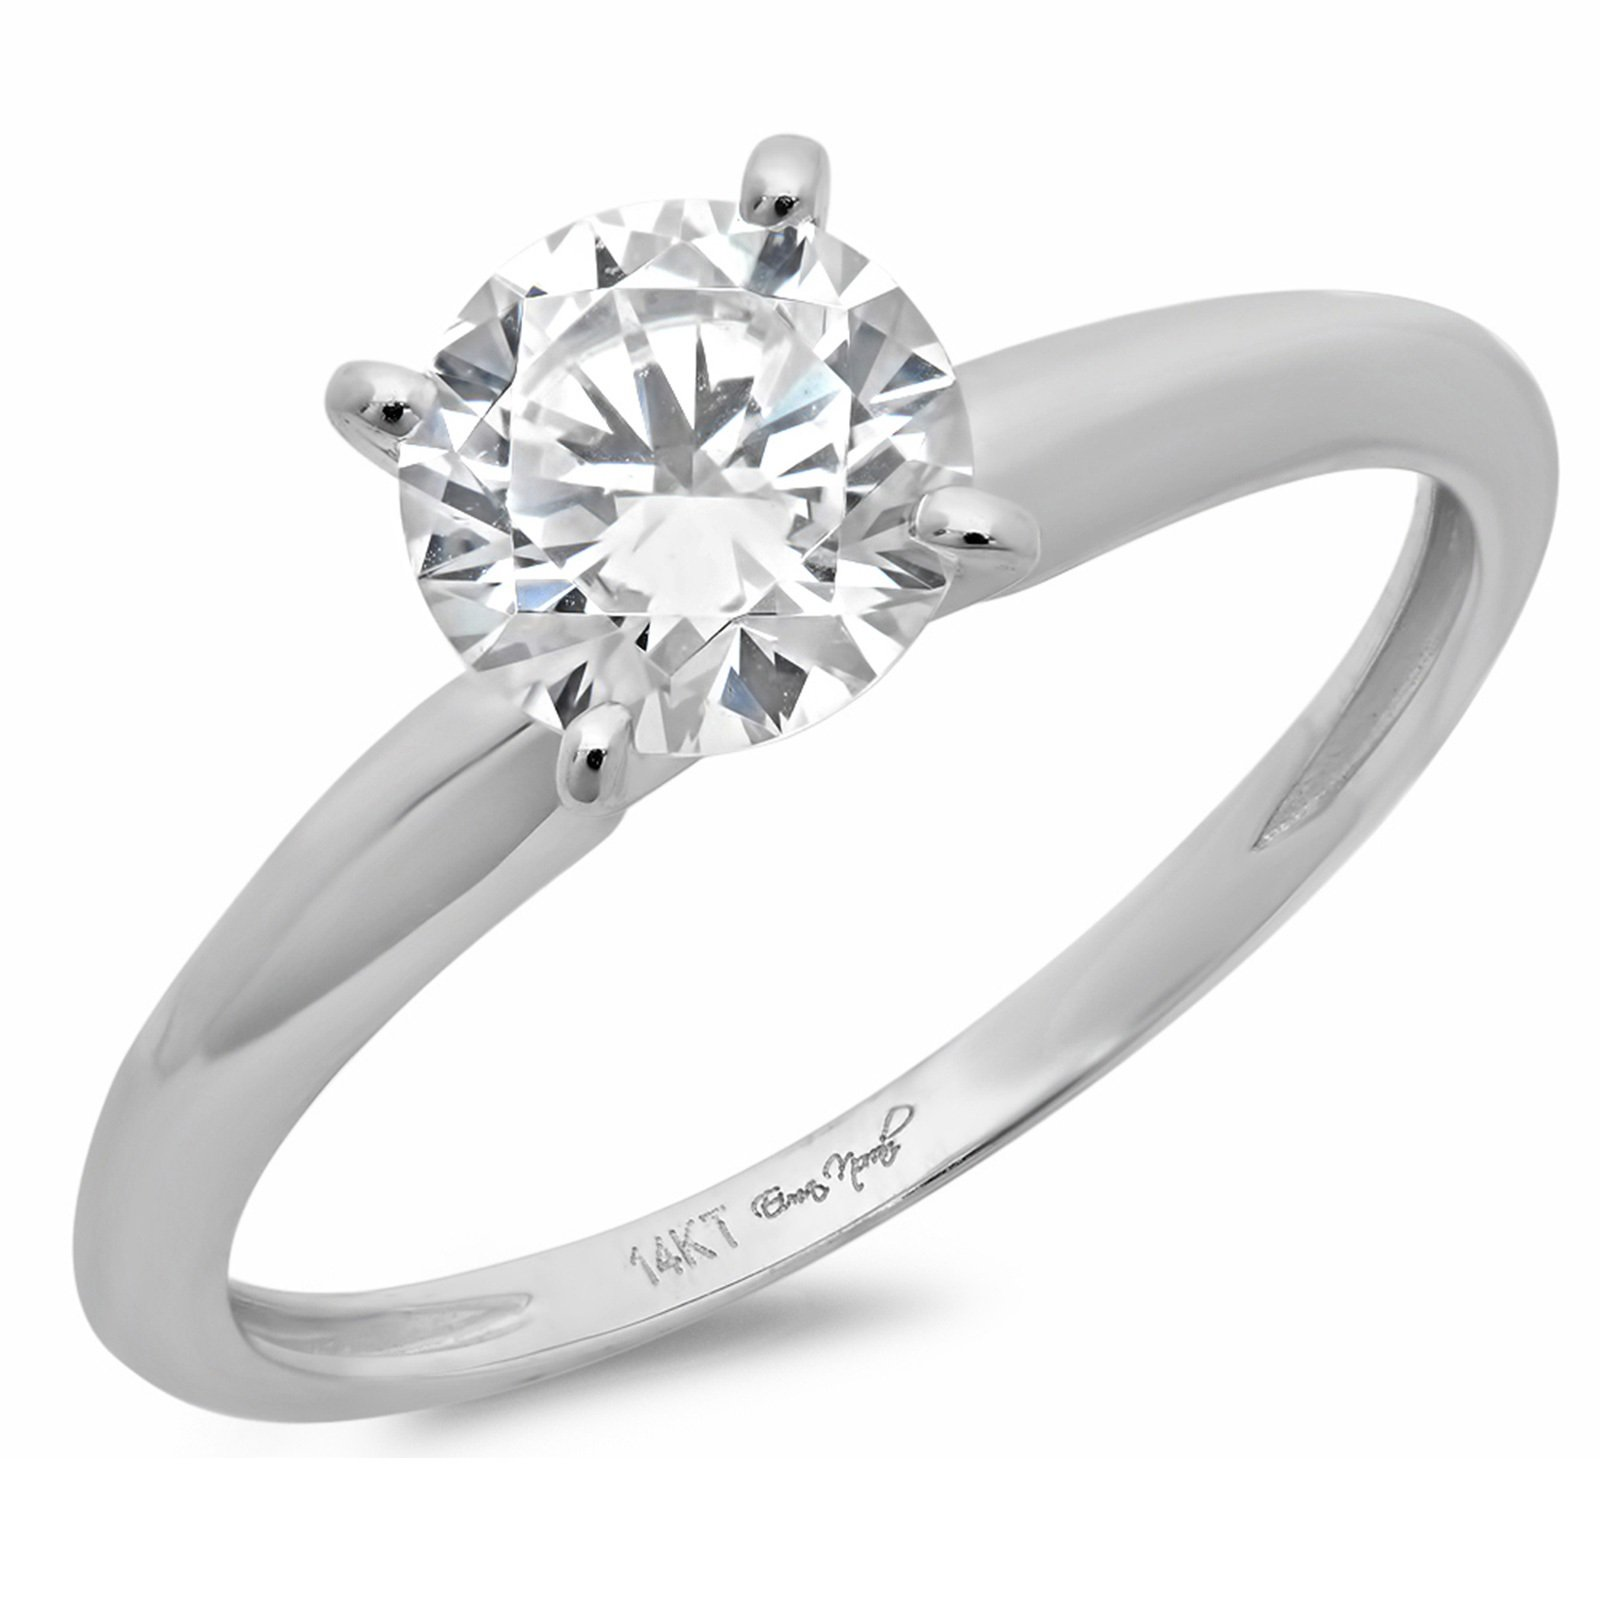 0.95ct Brilliant Round Cut Solitaire Highest Quality Lab Created White Sapphire Ideal VVS1 D 4-Prong Classic Designer Statement Ring in Solid Real 14k white gold for Women